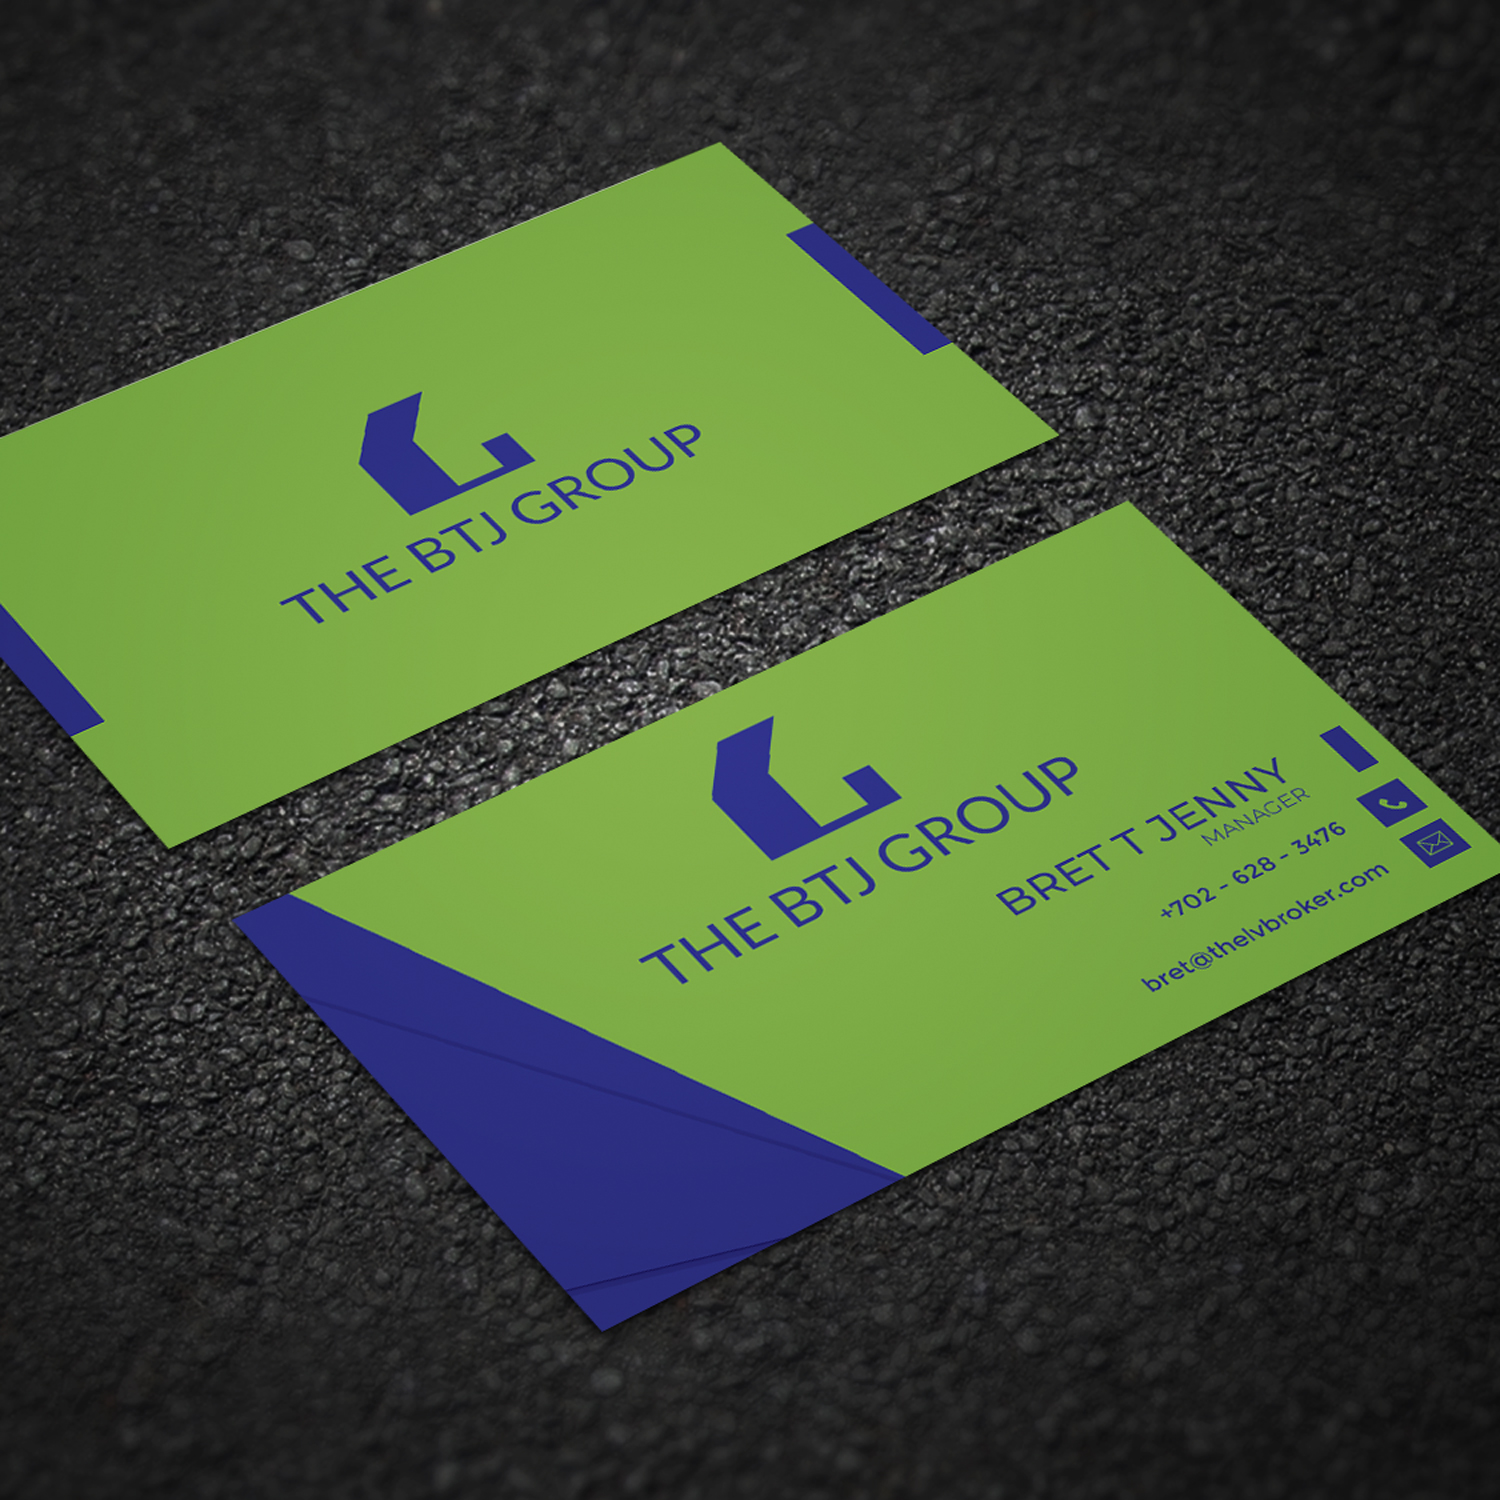 Business Card Design For Lv Lifestyle Properties By Imam Art